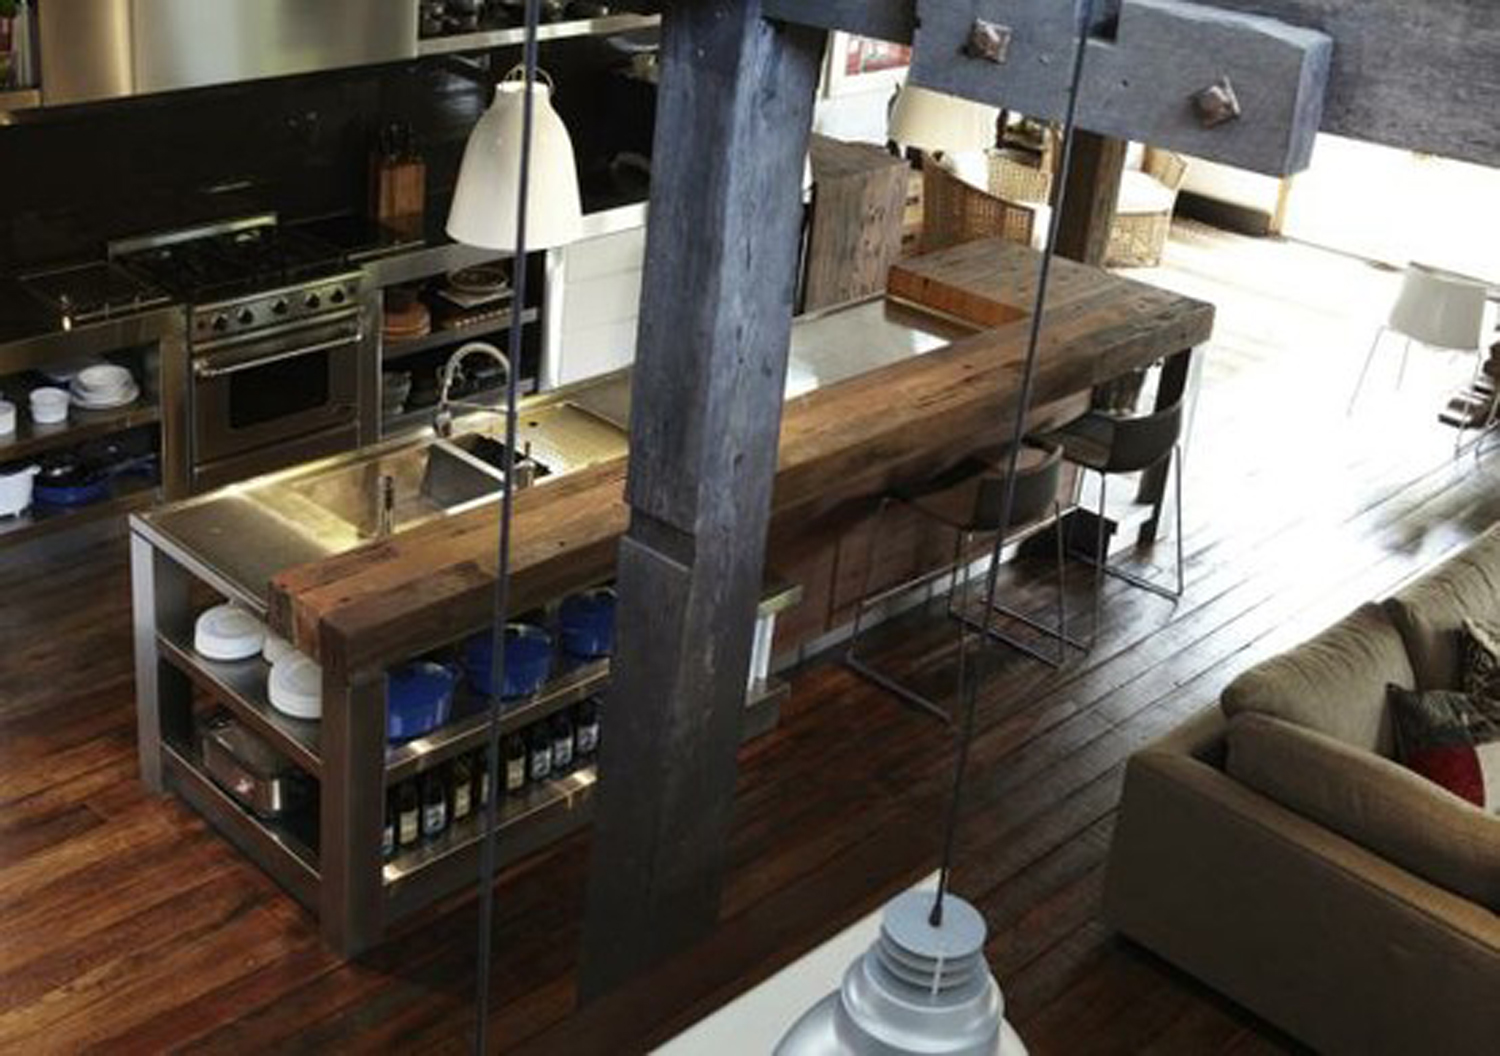 Rustic Industrial Kitchen Sunnylit Style Rustic Industrial In The Making